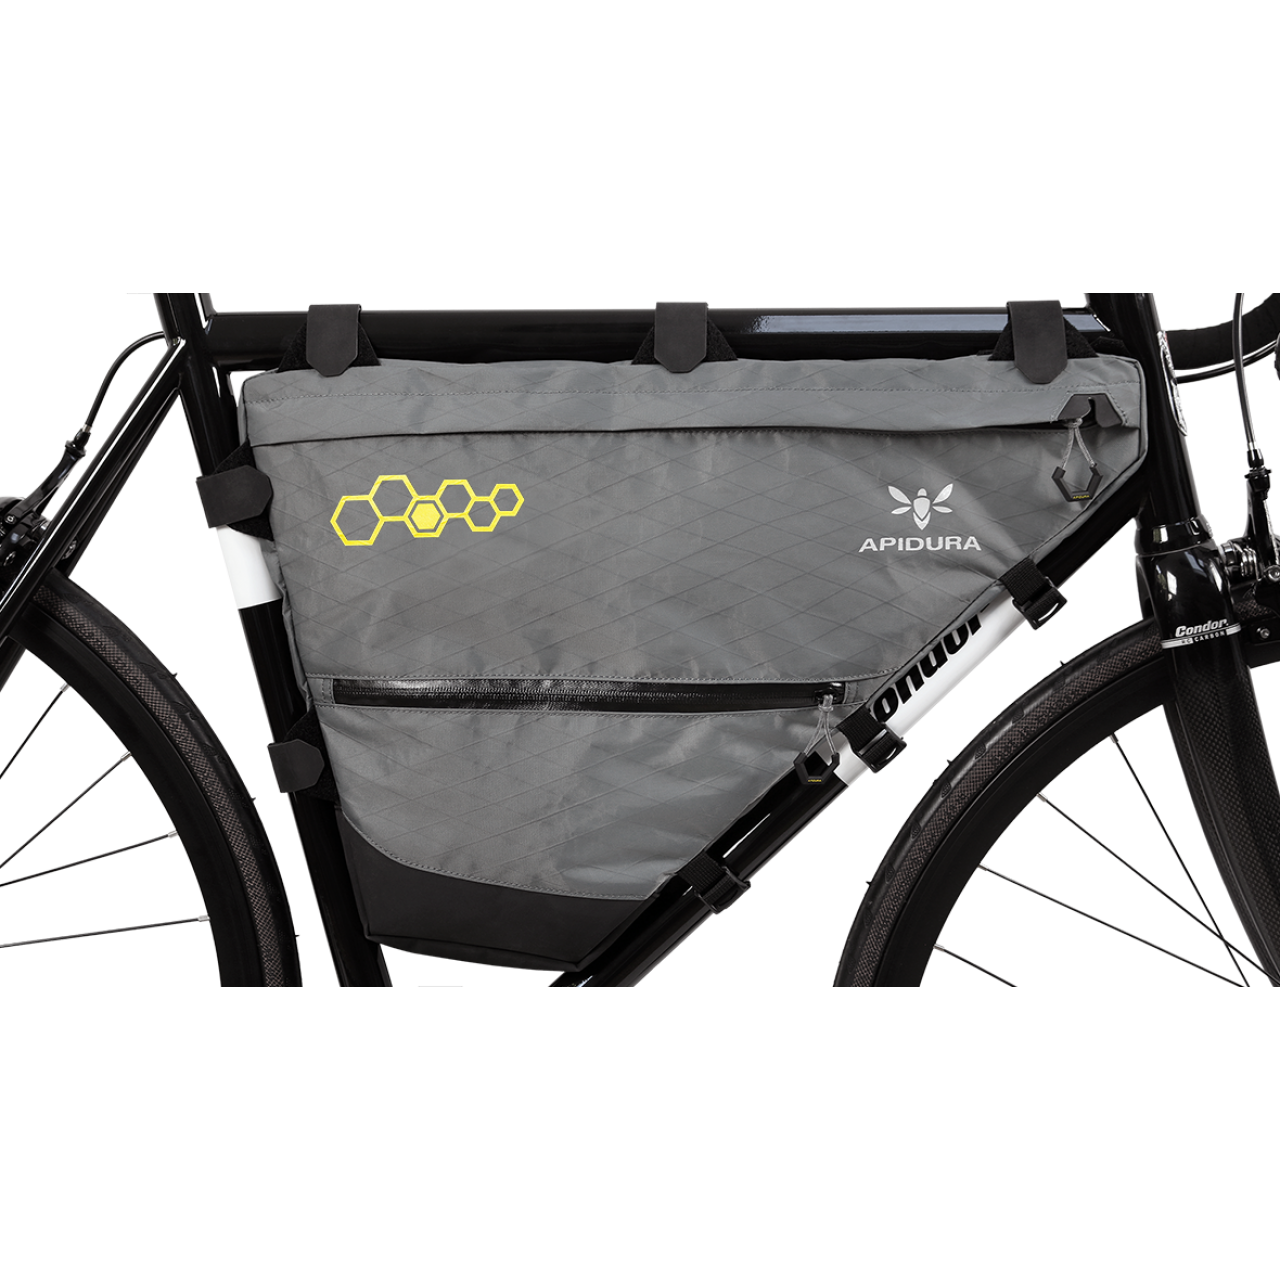 Apidura - Backcountry Full Frame Pack Rahmentasche - 14 L, 159,90 €